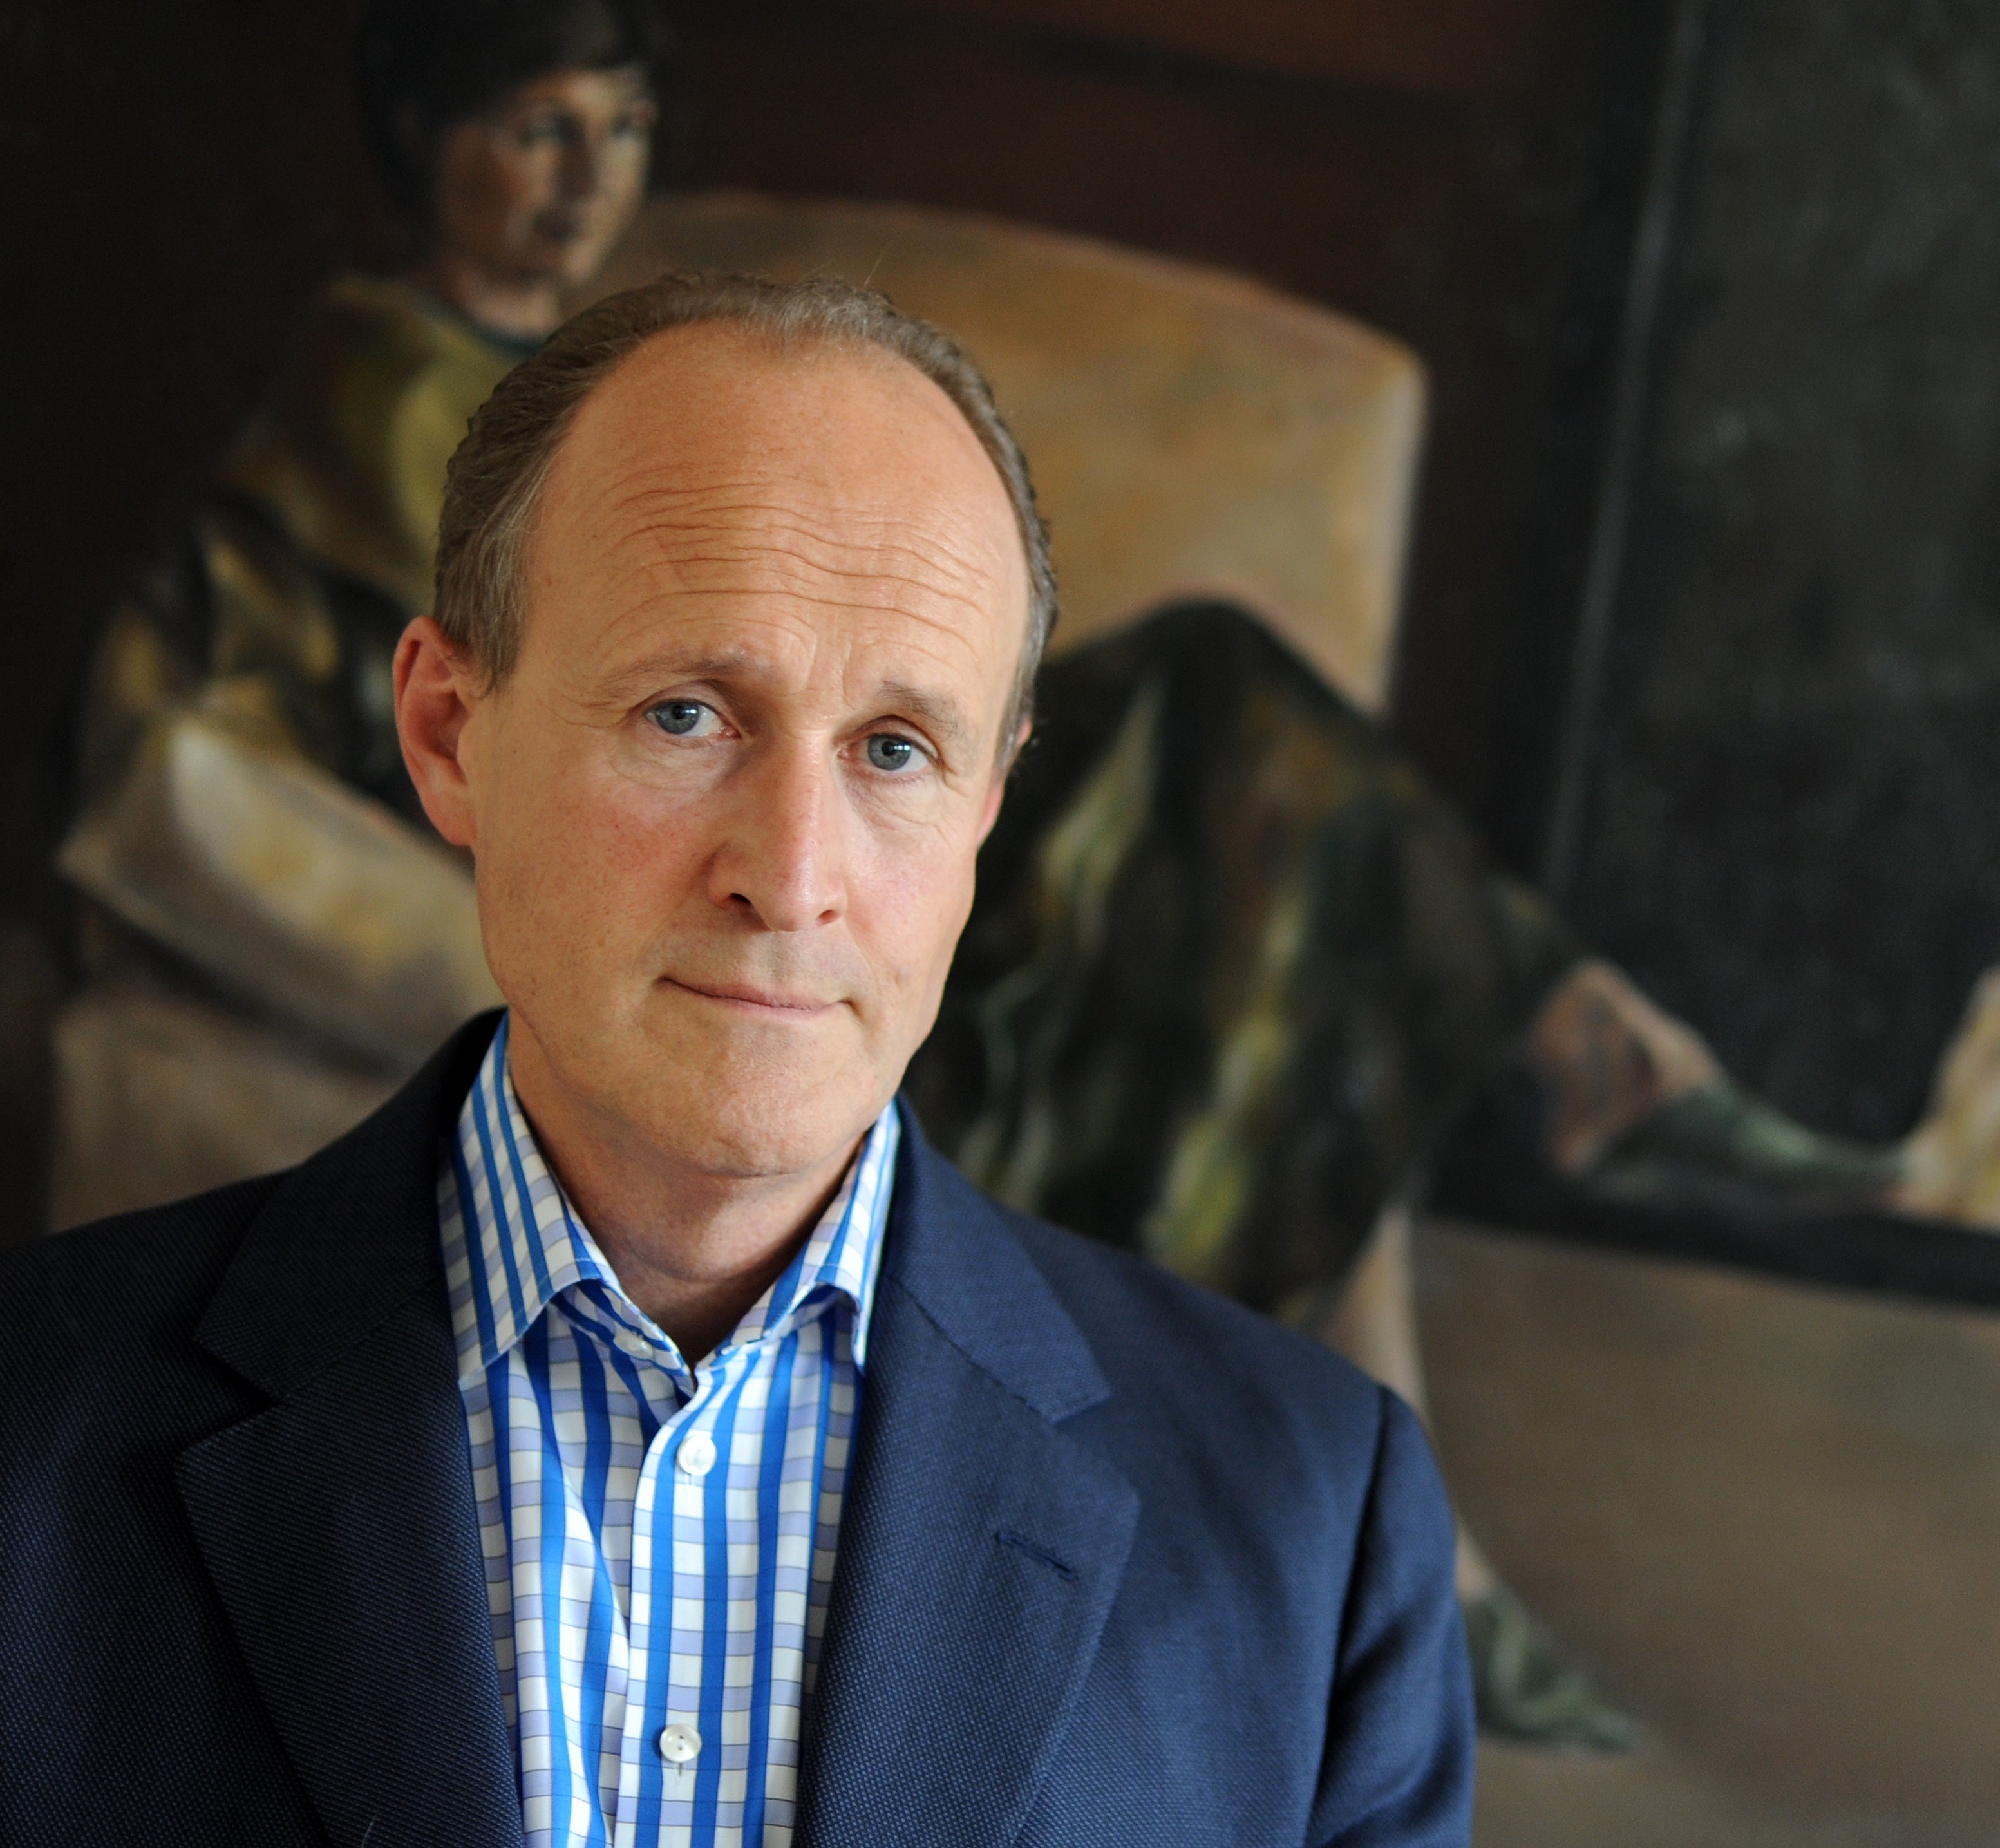 Sir Peter Bazalgette, non-executive Chair of ITV, to speak at The Printing Charity's Annual Luncheon